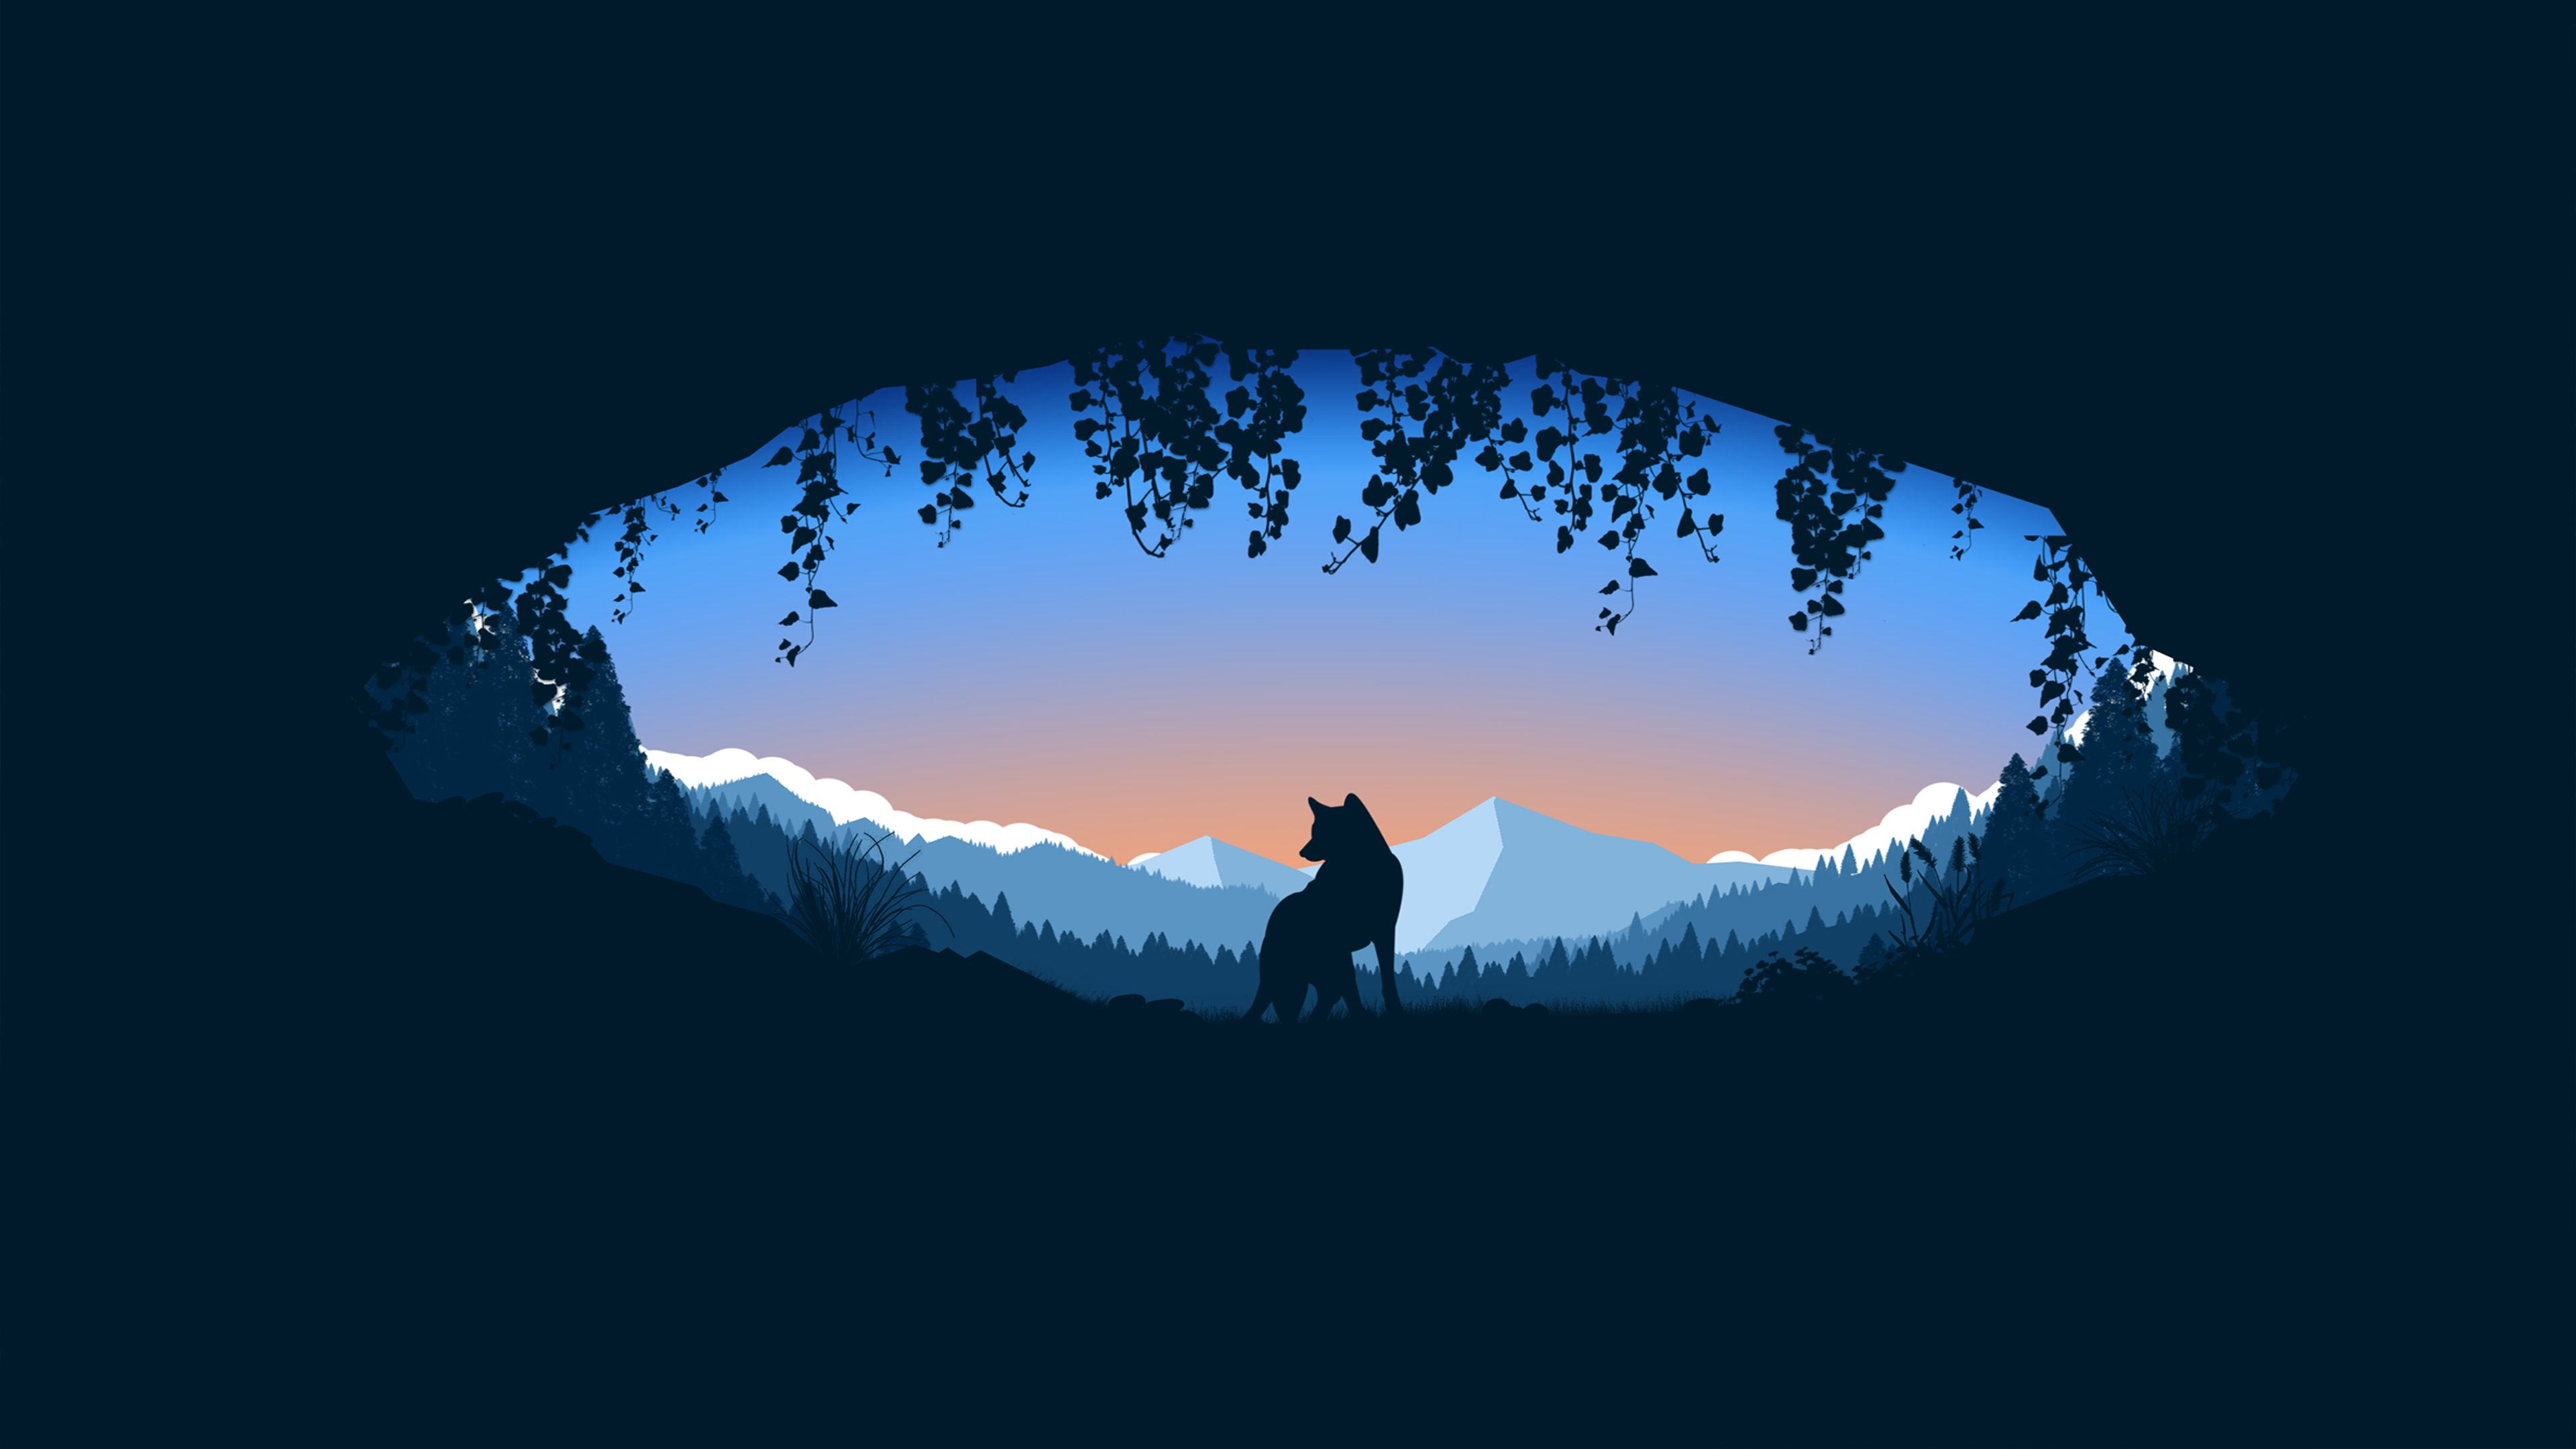 Wolf Cave Minimalist 4k Wolf Wallpapers Minimalist Wallpapers Minimalism Wallpapers Hd Wallpapers Digital Minimalist Wallpaper Wolf Wallpaper Art Wallpaper